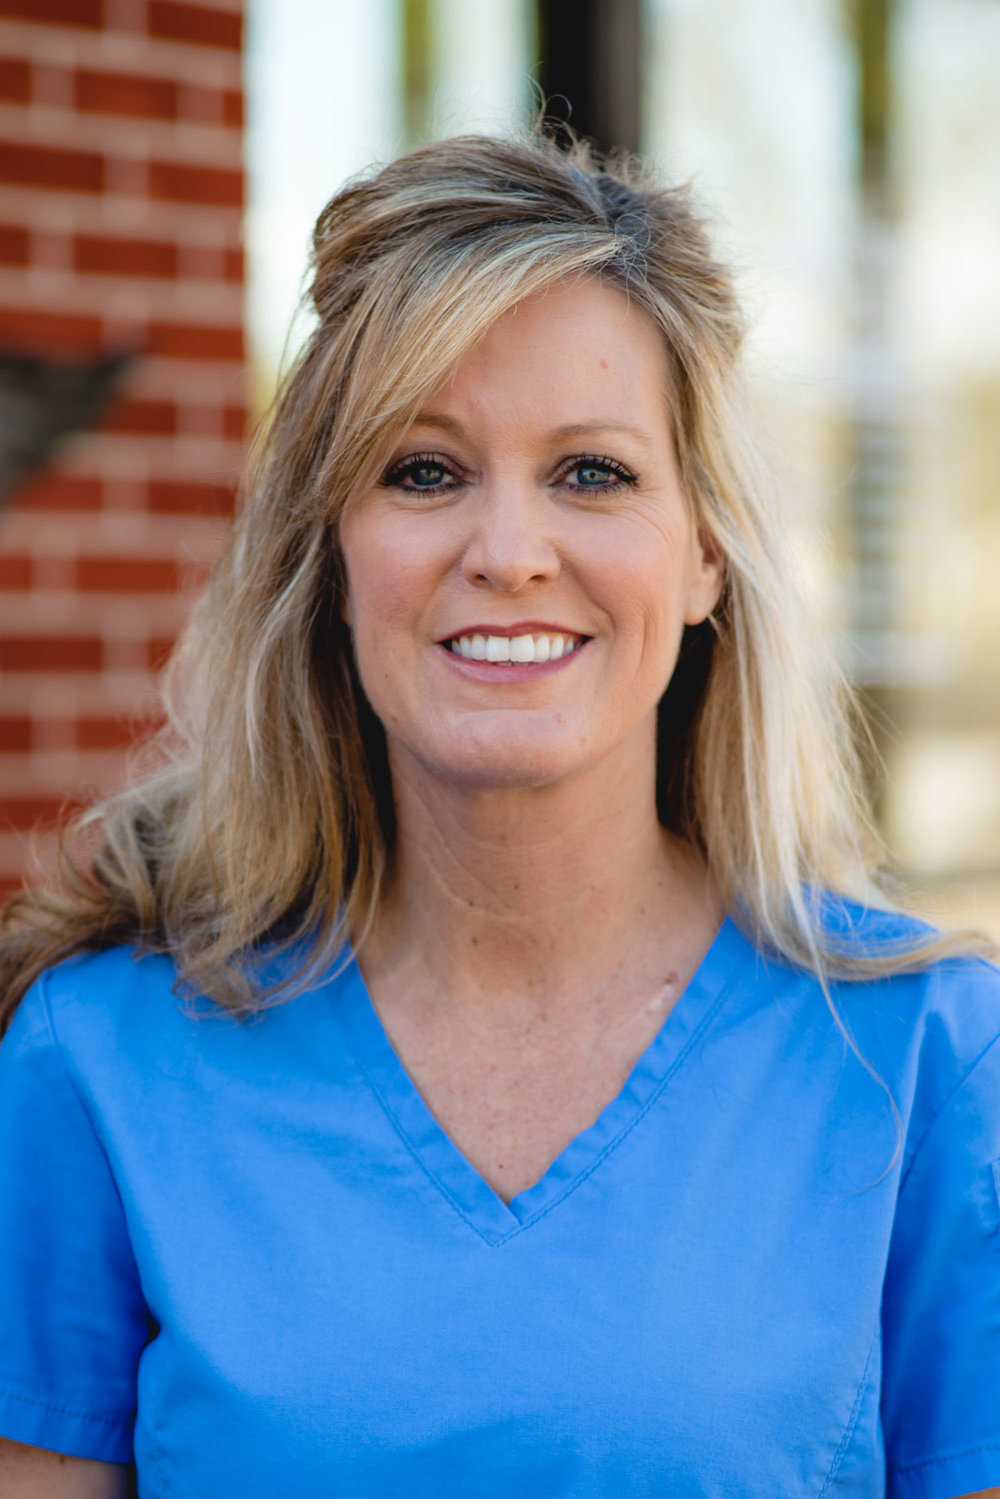 Karen Sessoms, RDH - Dental Hygienist